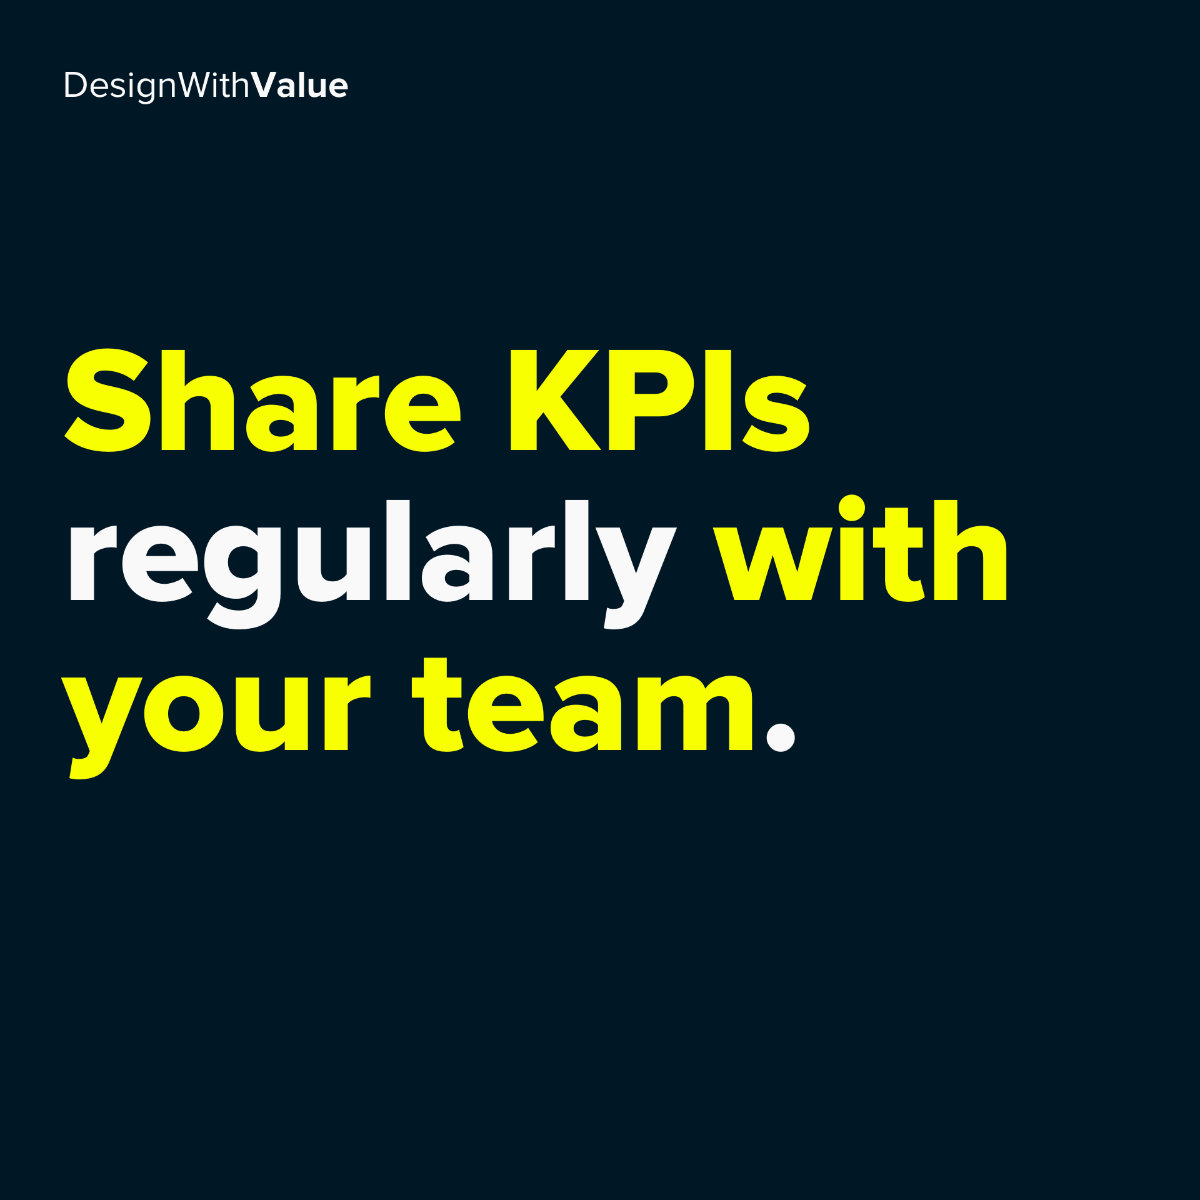 Share kpis regularly with your team